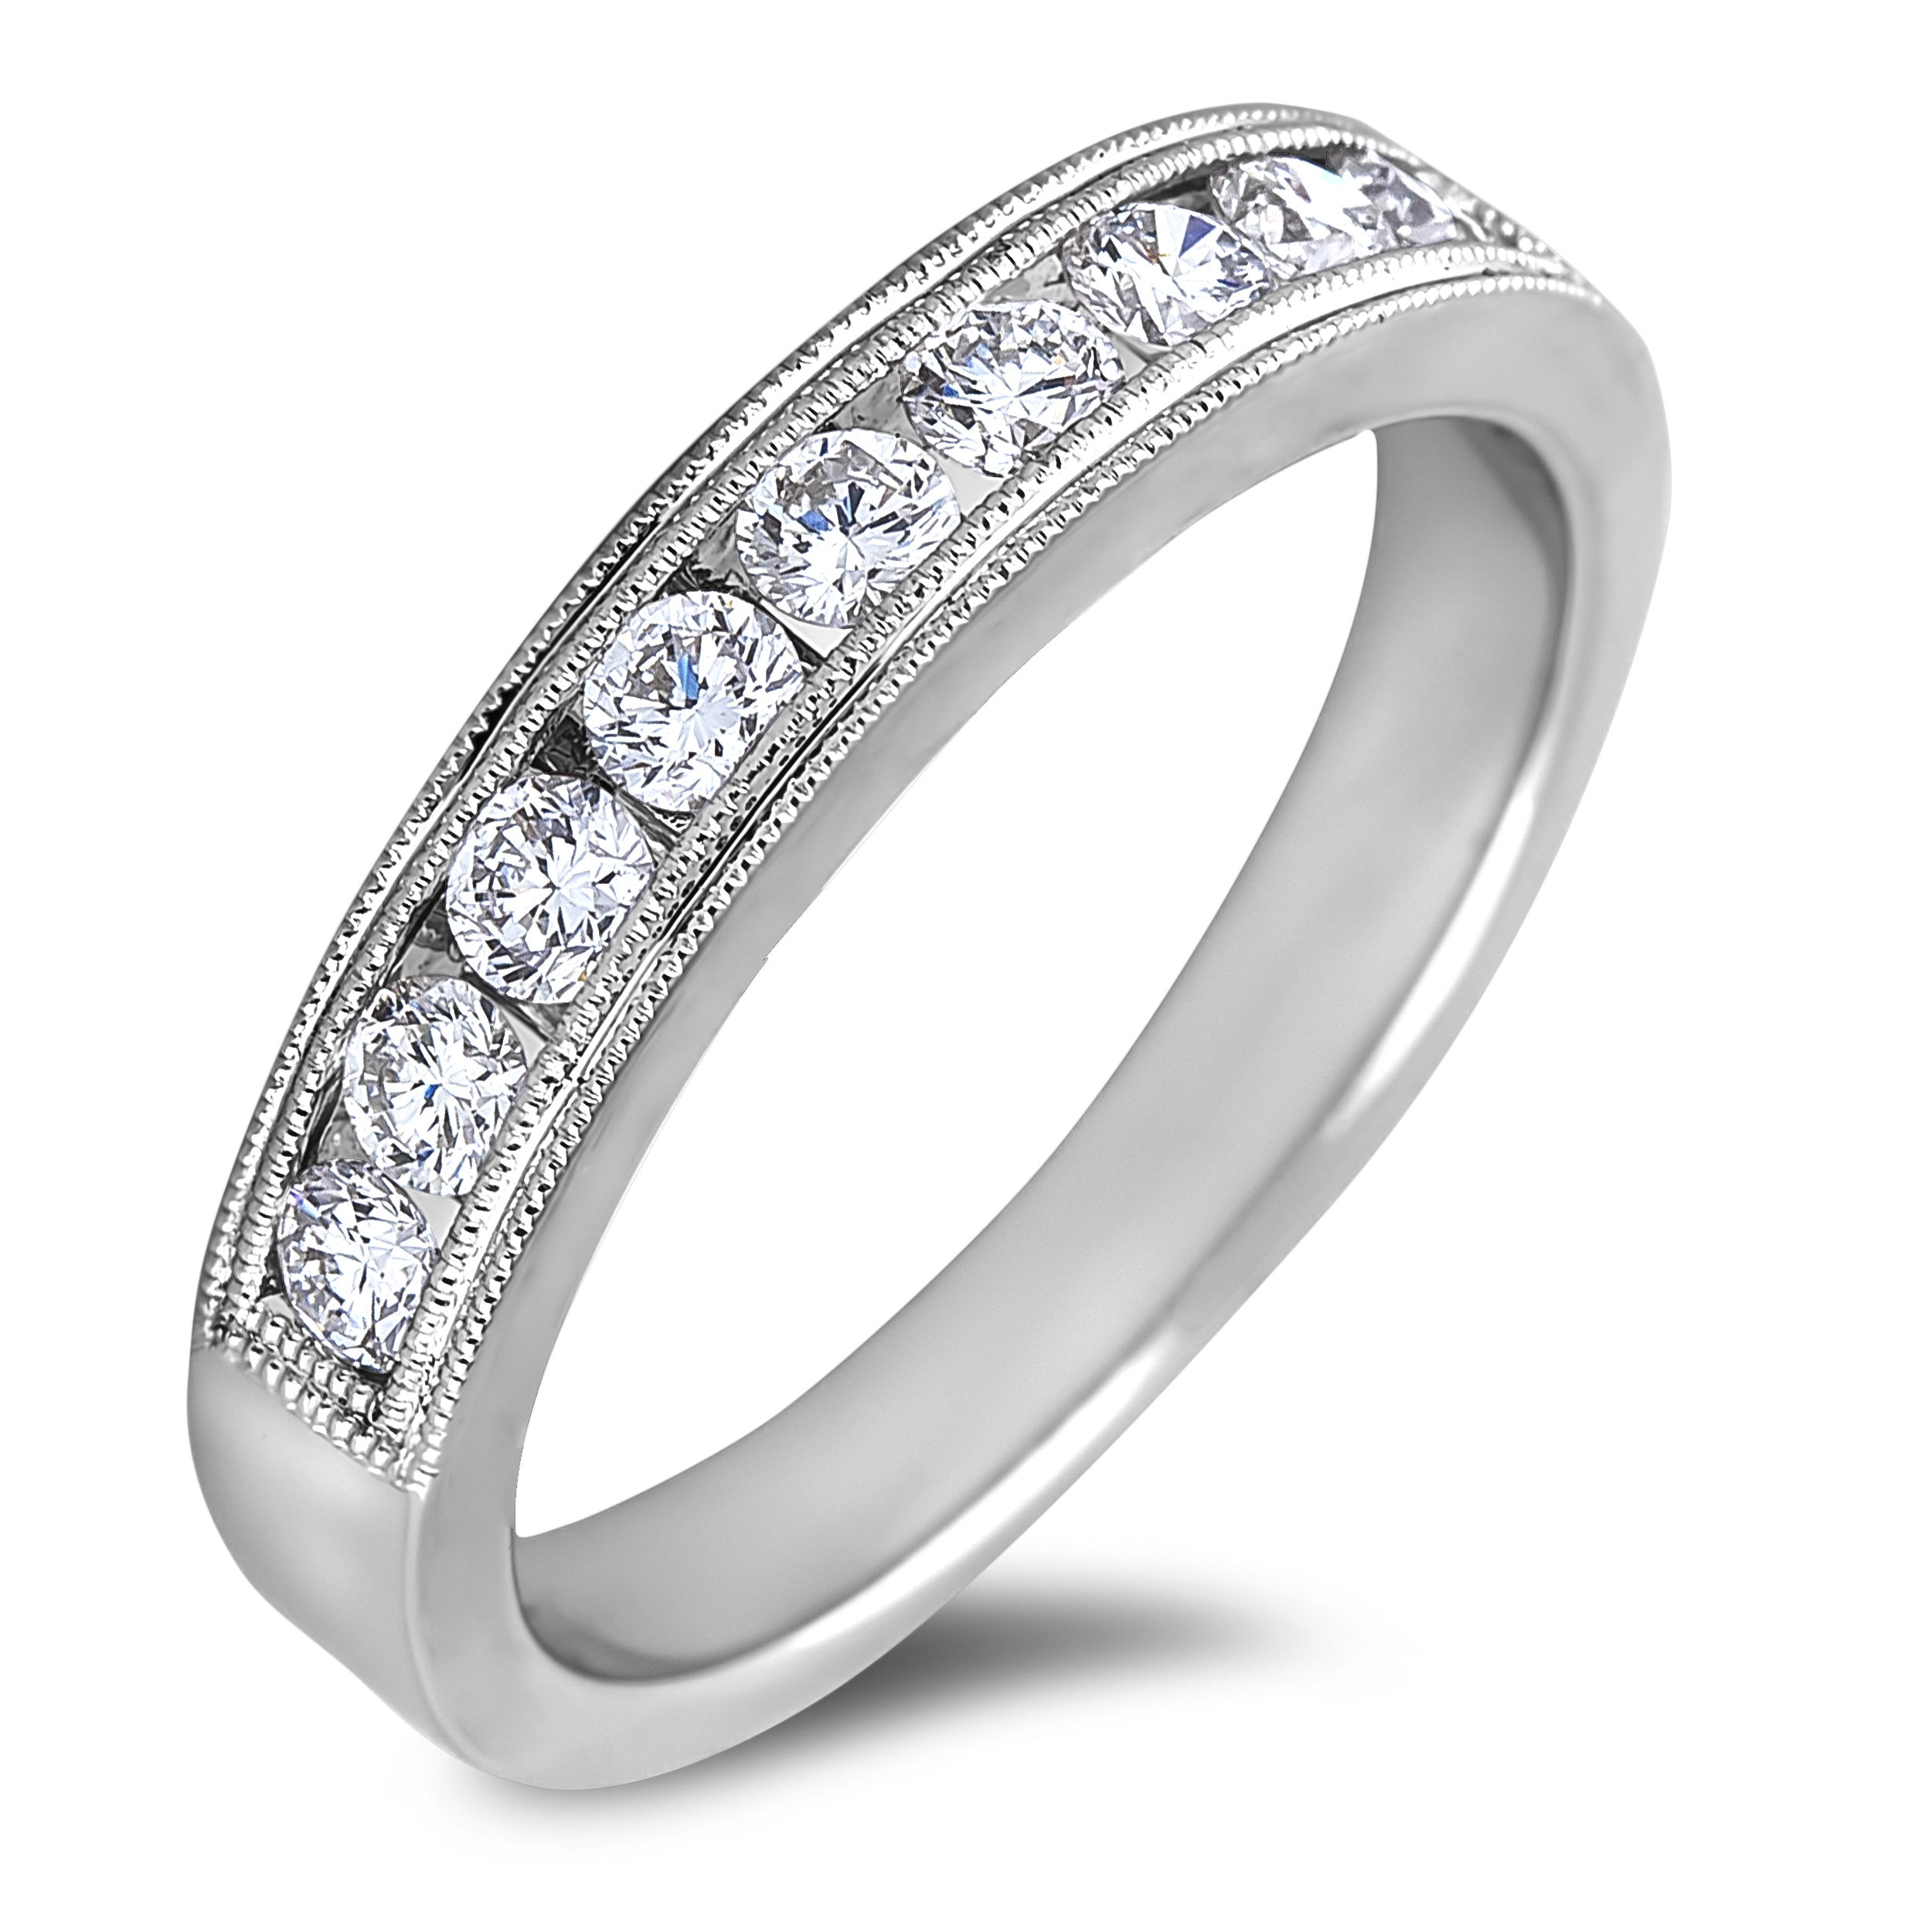 Ladies Diamond Channel Set Wedding Ring For Most Current Diamond Channel Anniversary Bands In Gold (View 18 of 25)